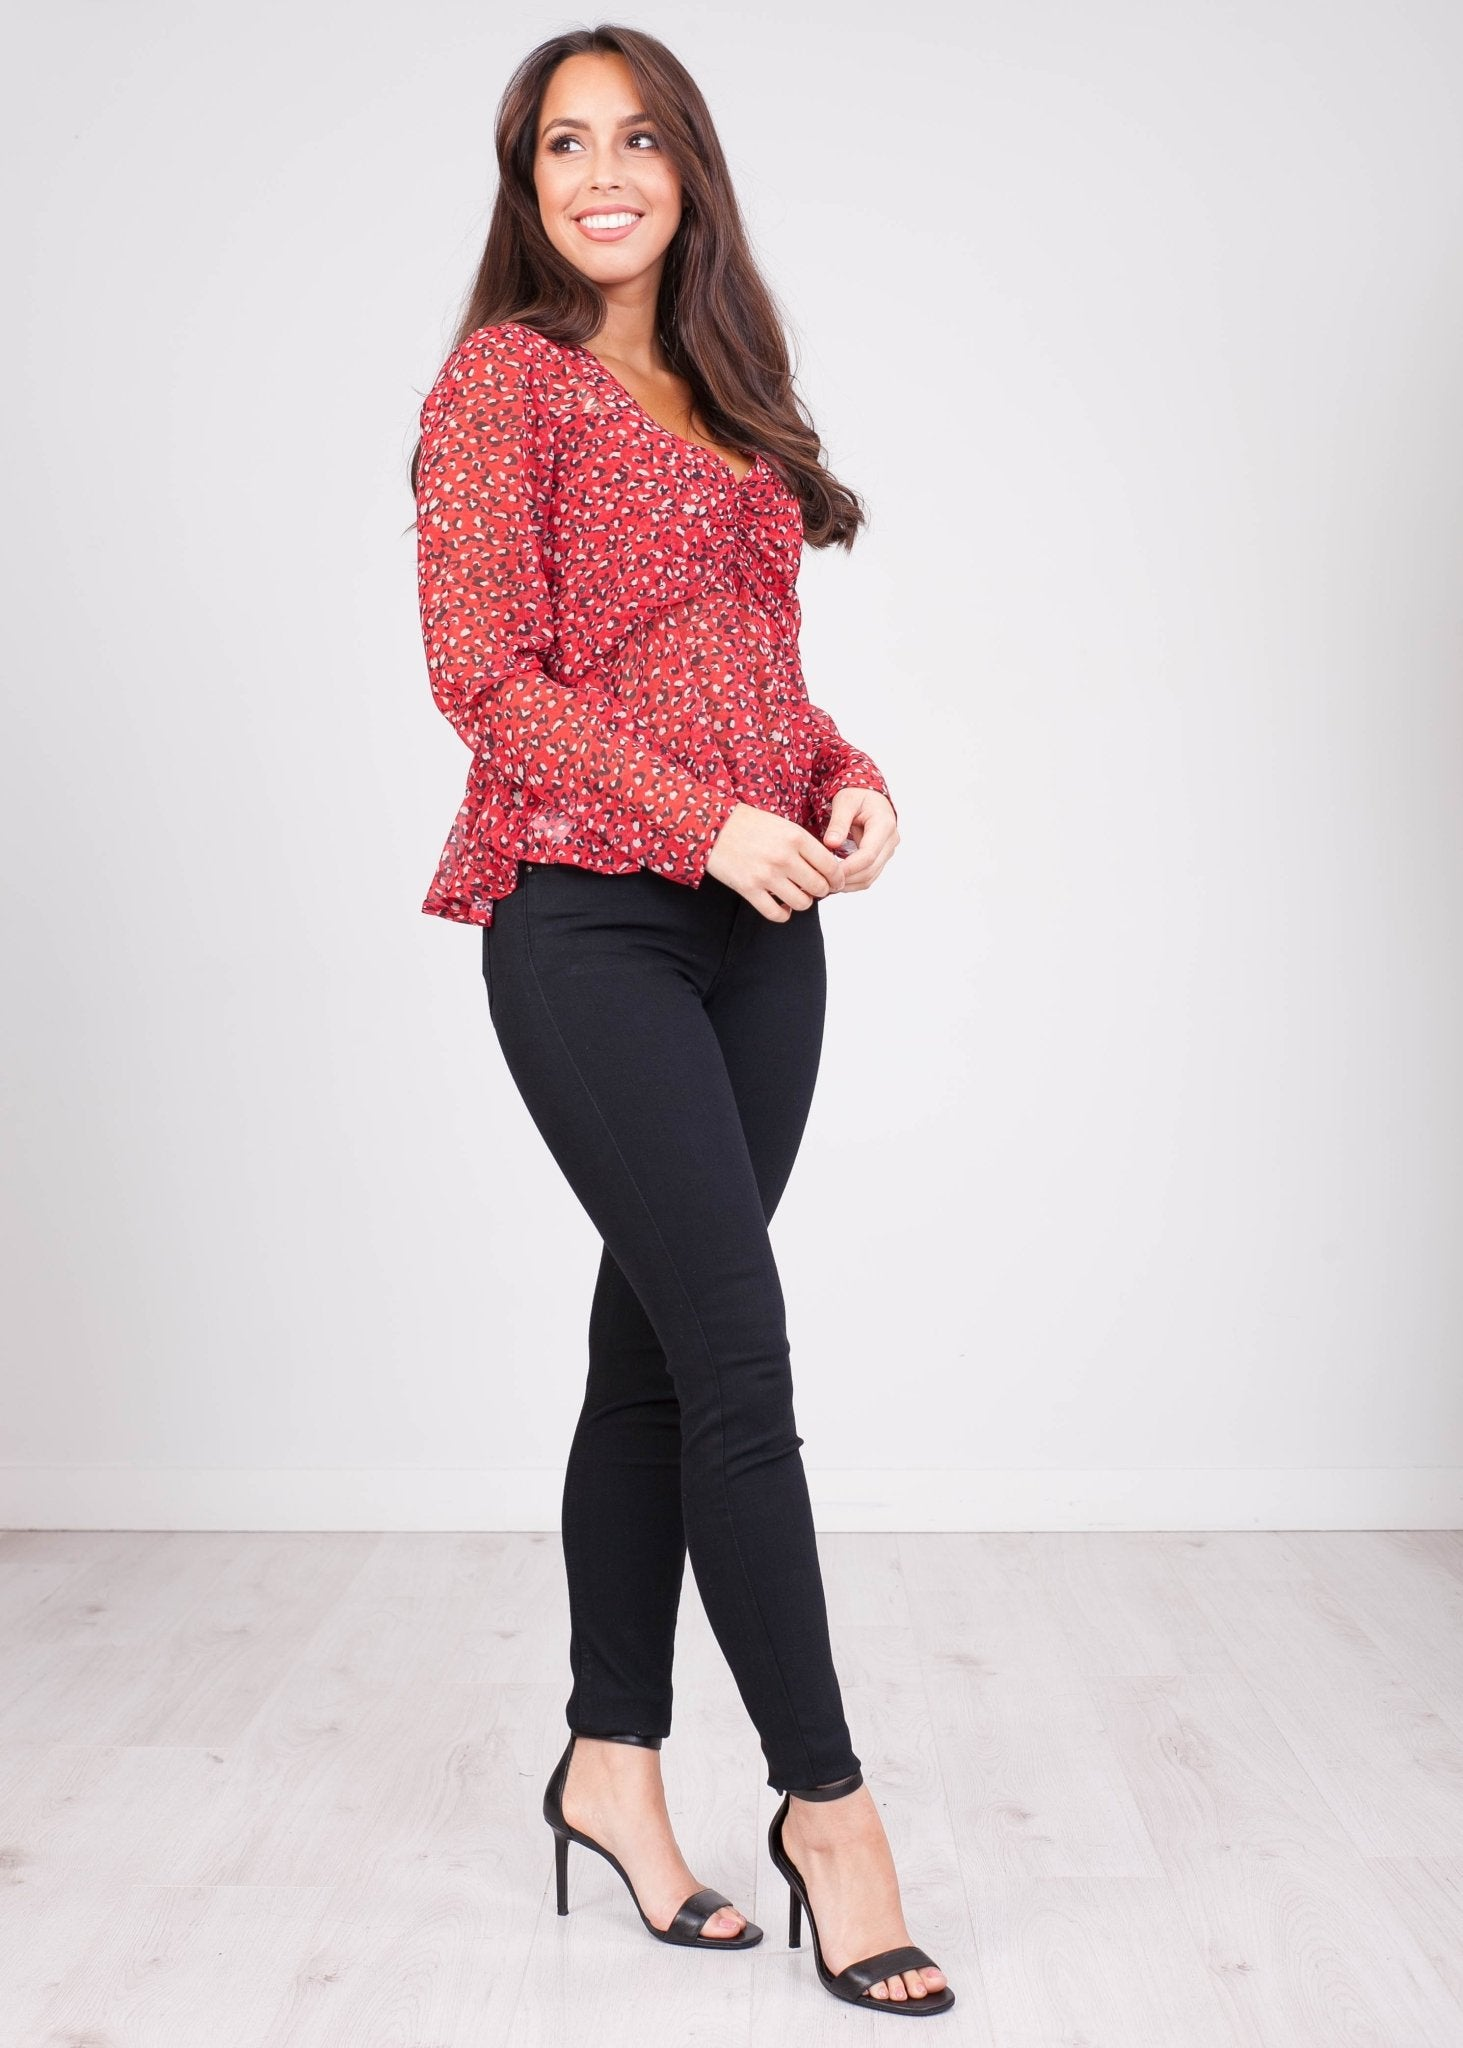 Charlee Red Leopard Print Blouse - The Walk in Wardrobe